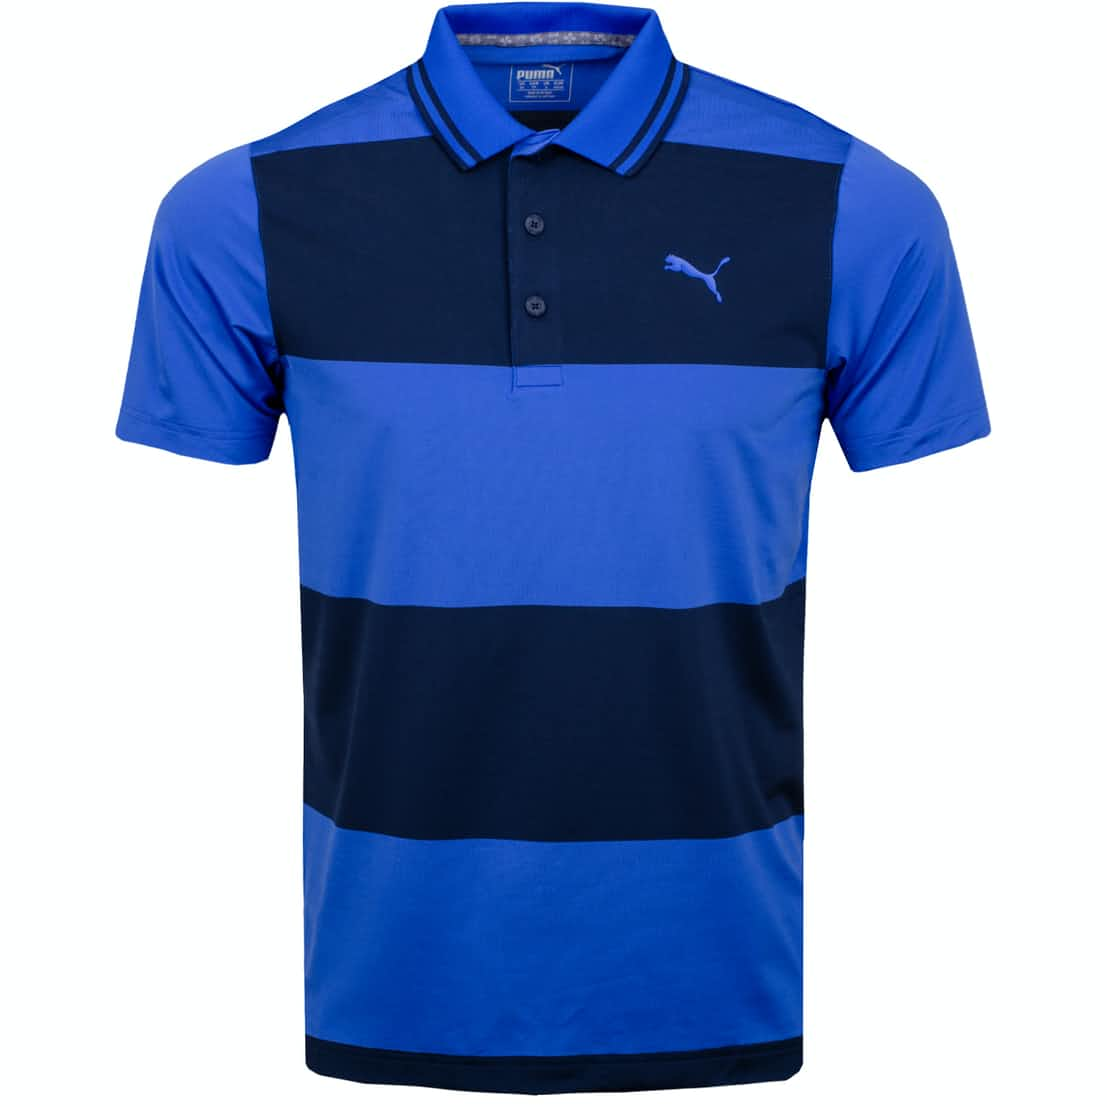 Rugby Polo Dazzling Blue/Peacoat - AW19